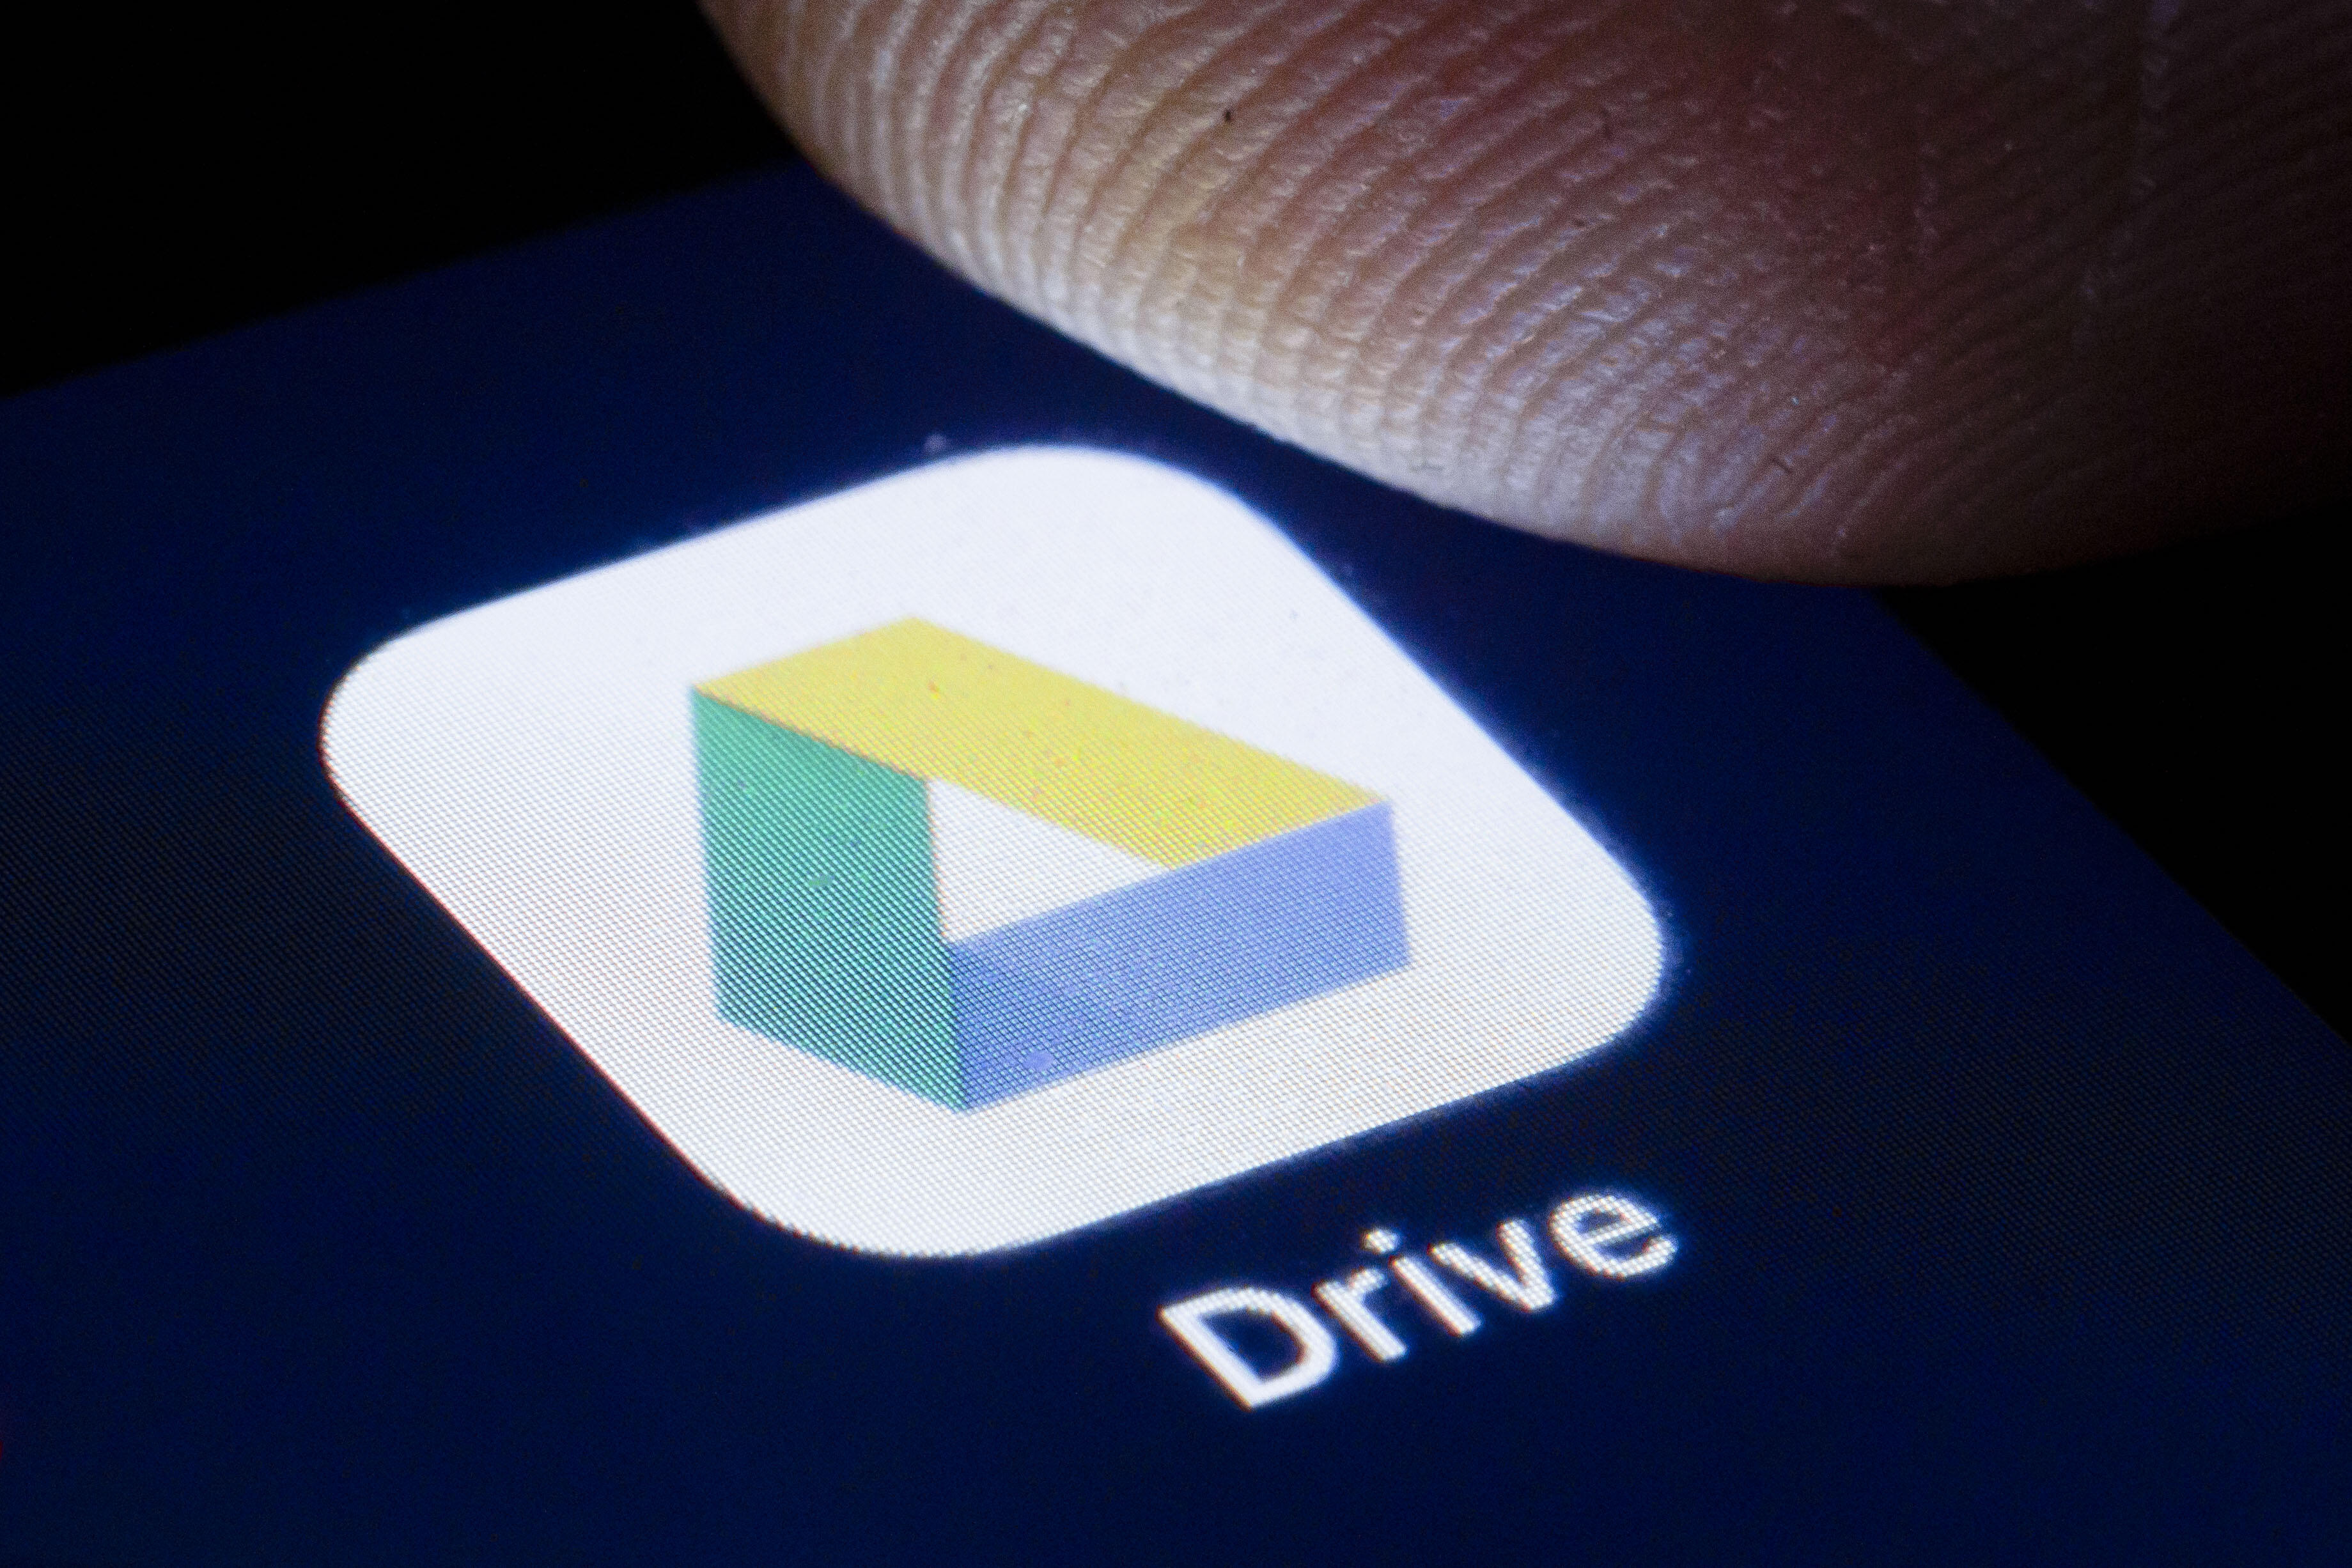 google-drive-gettyimages-1211180800